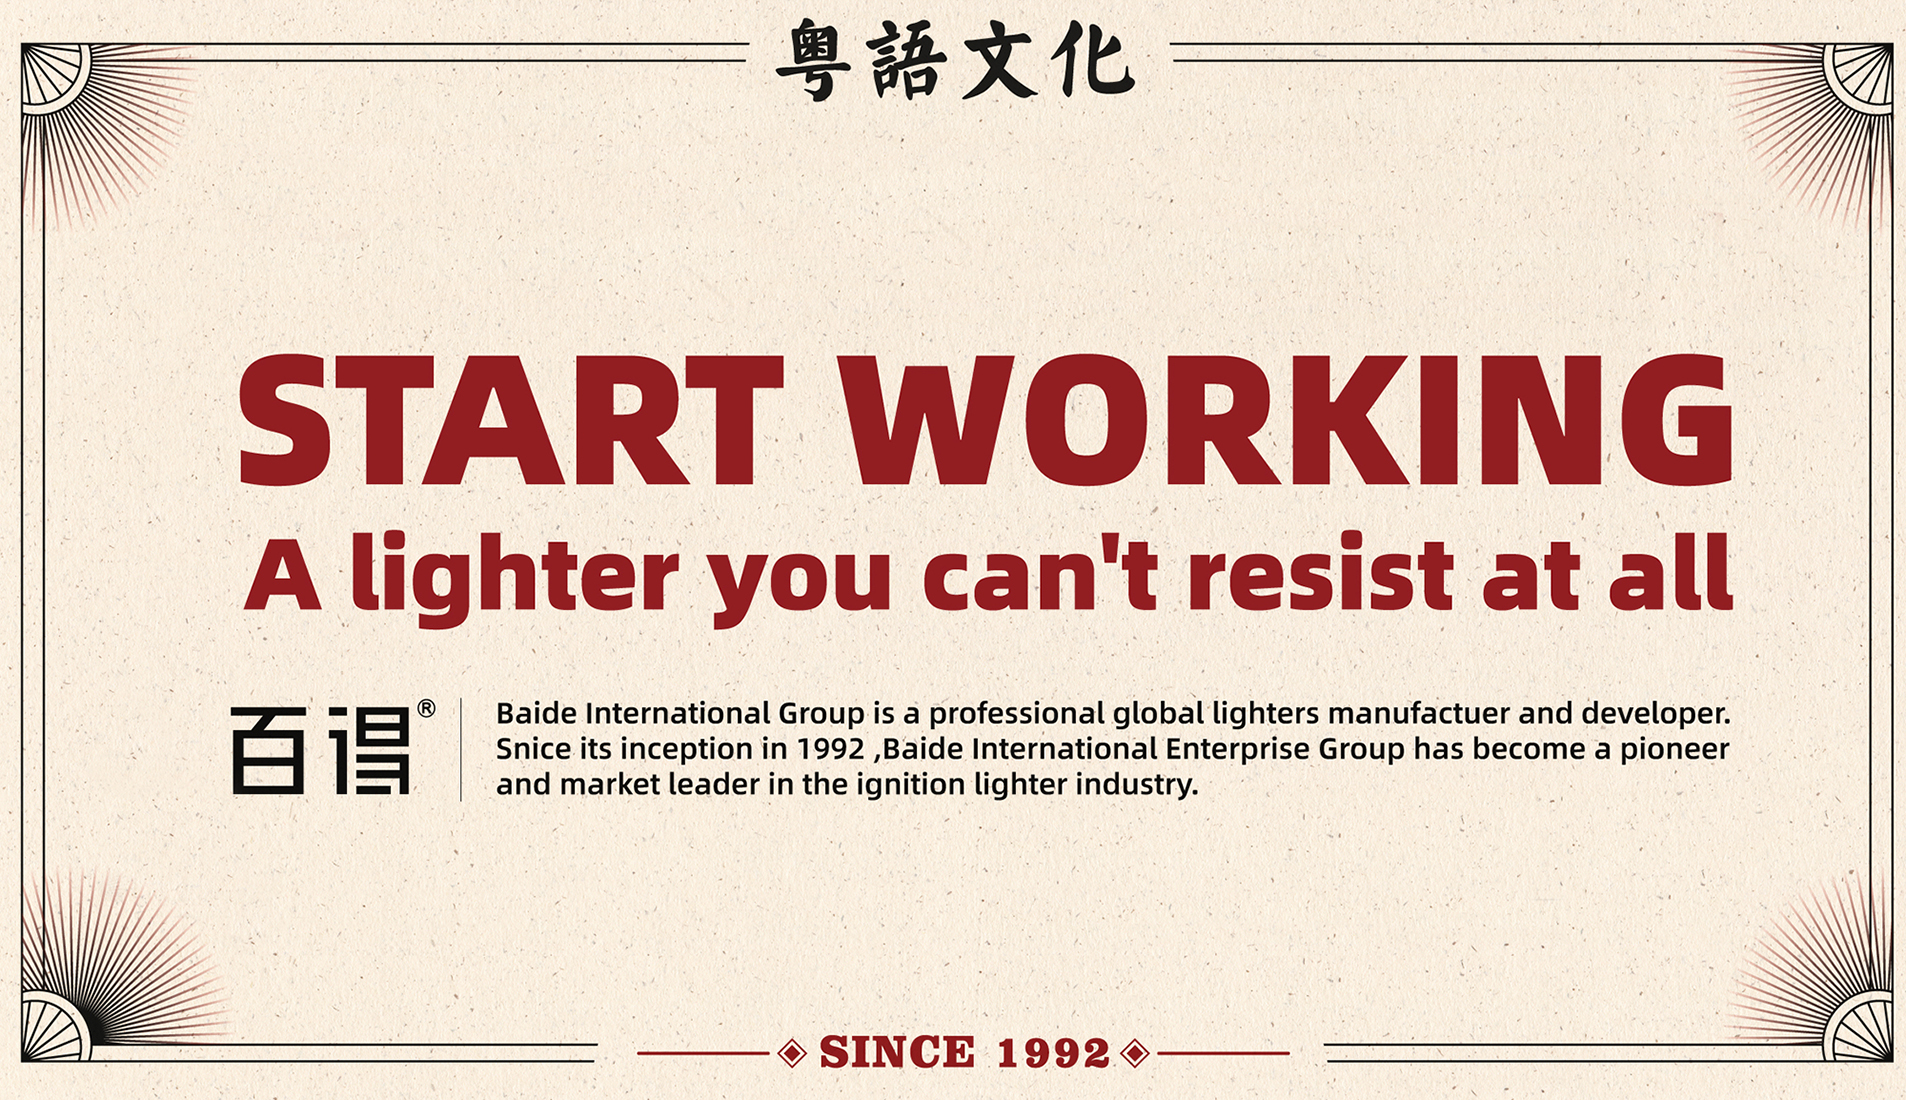 Start working! A lighter you can't resist at all!